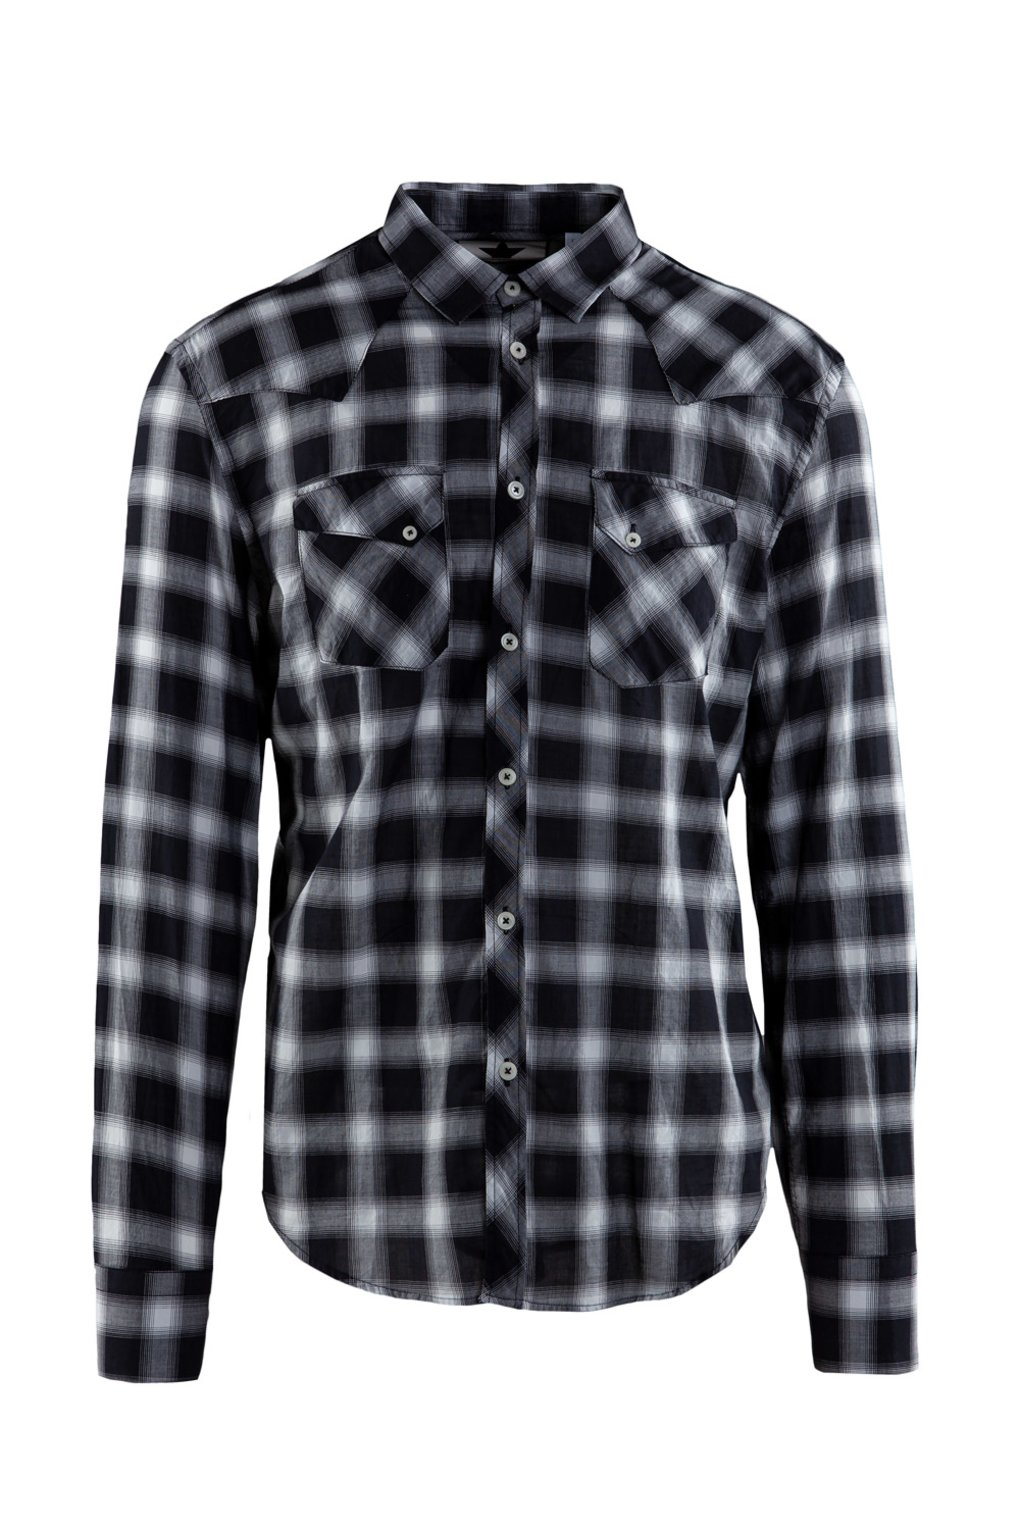 Texand shirt squared pattern